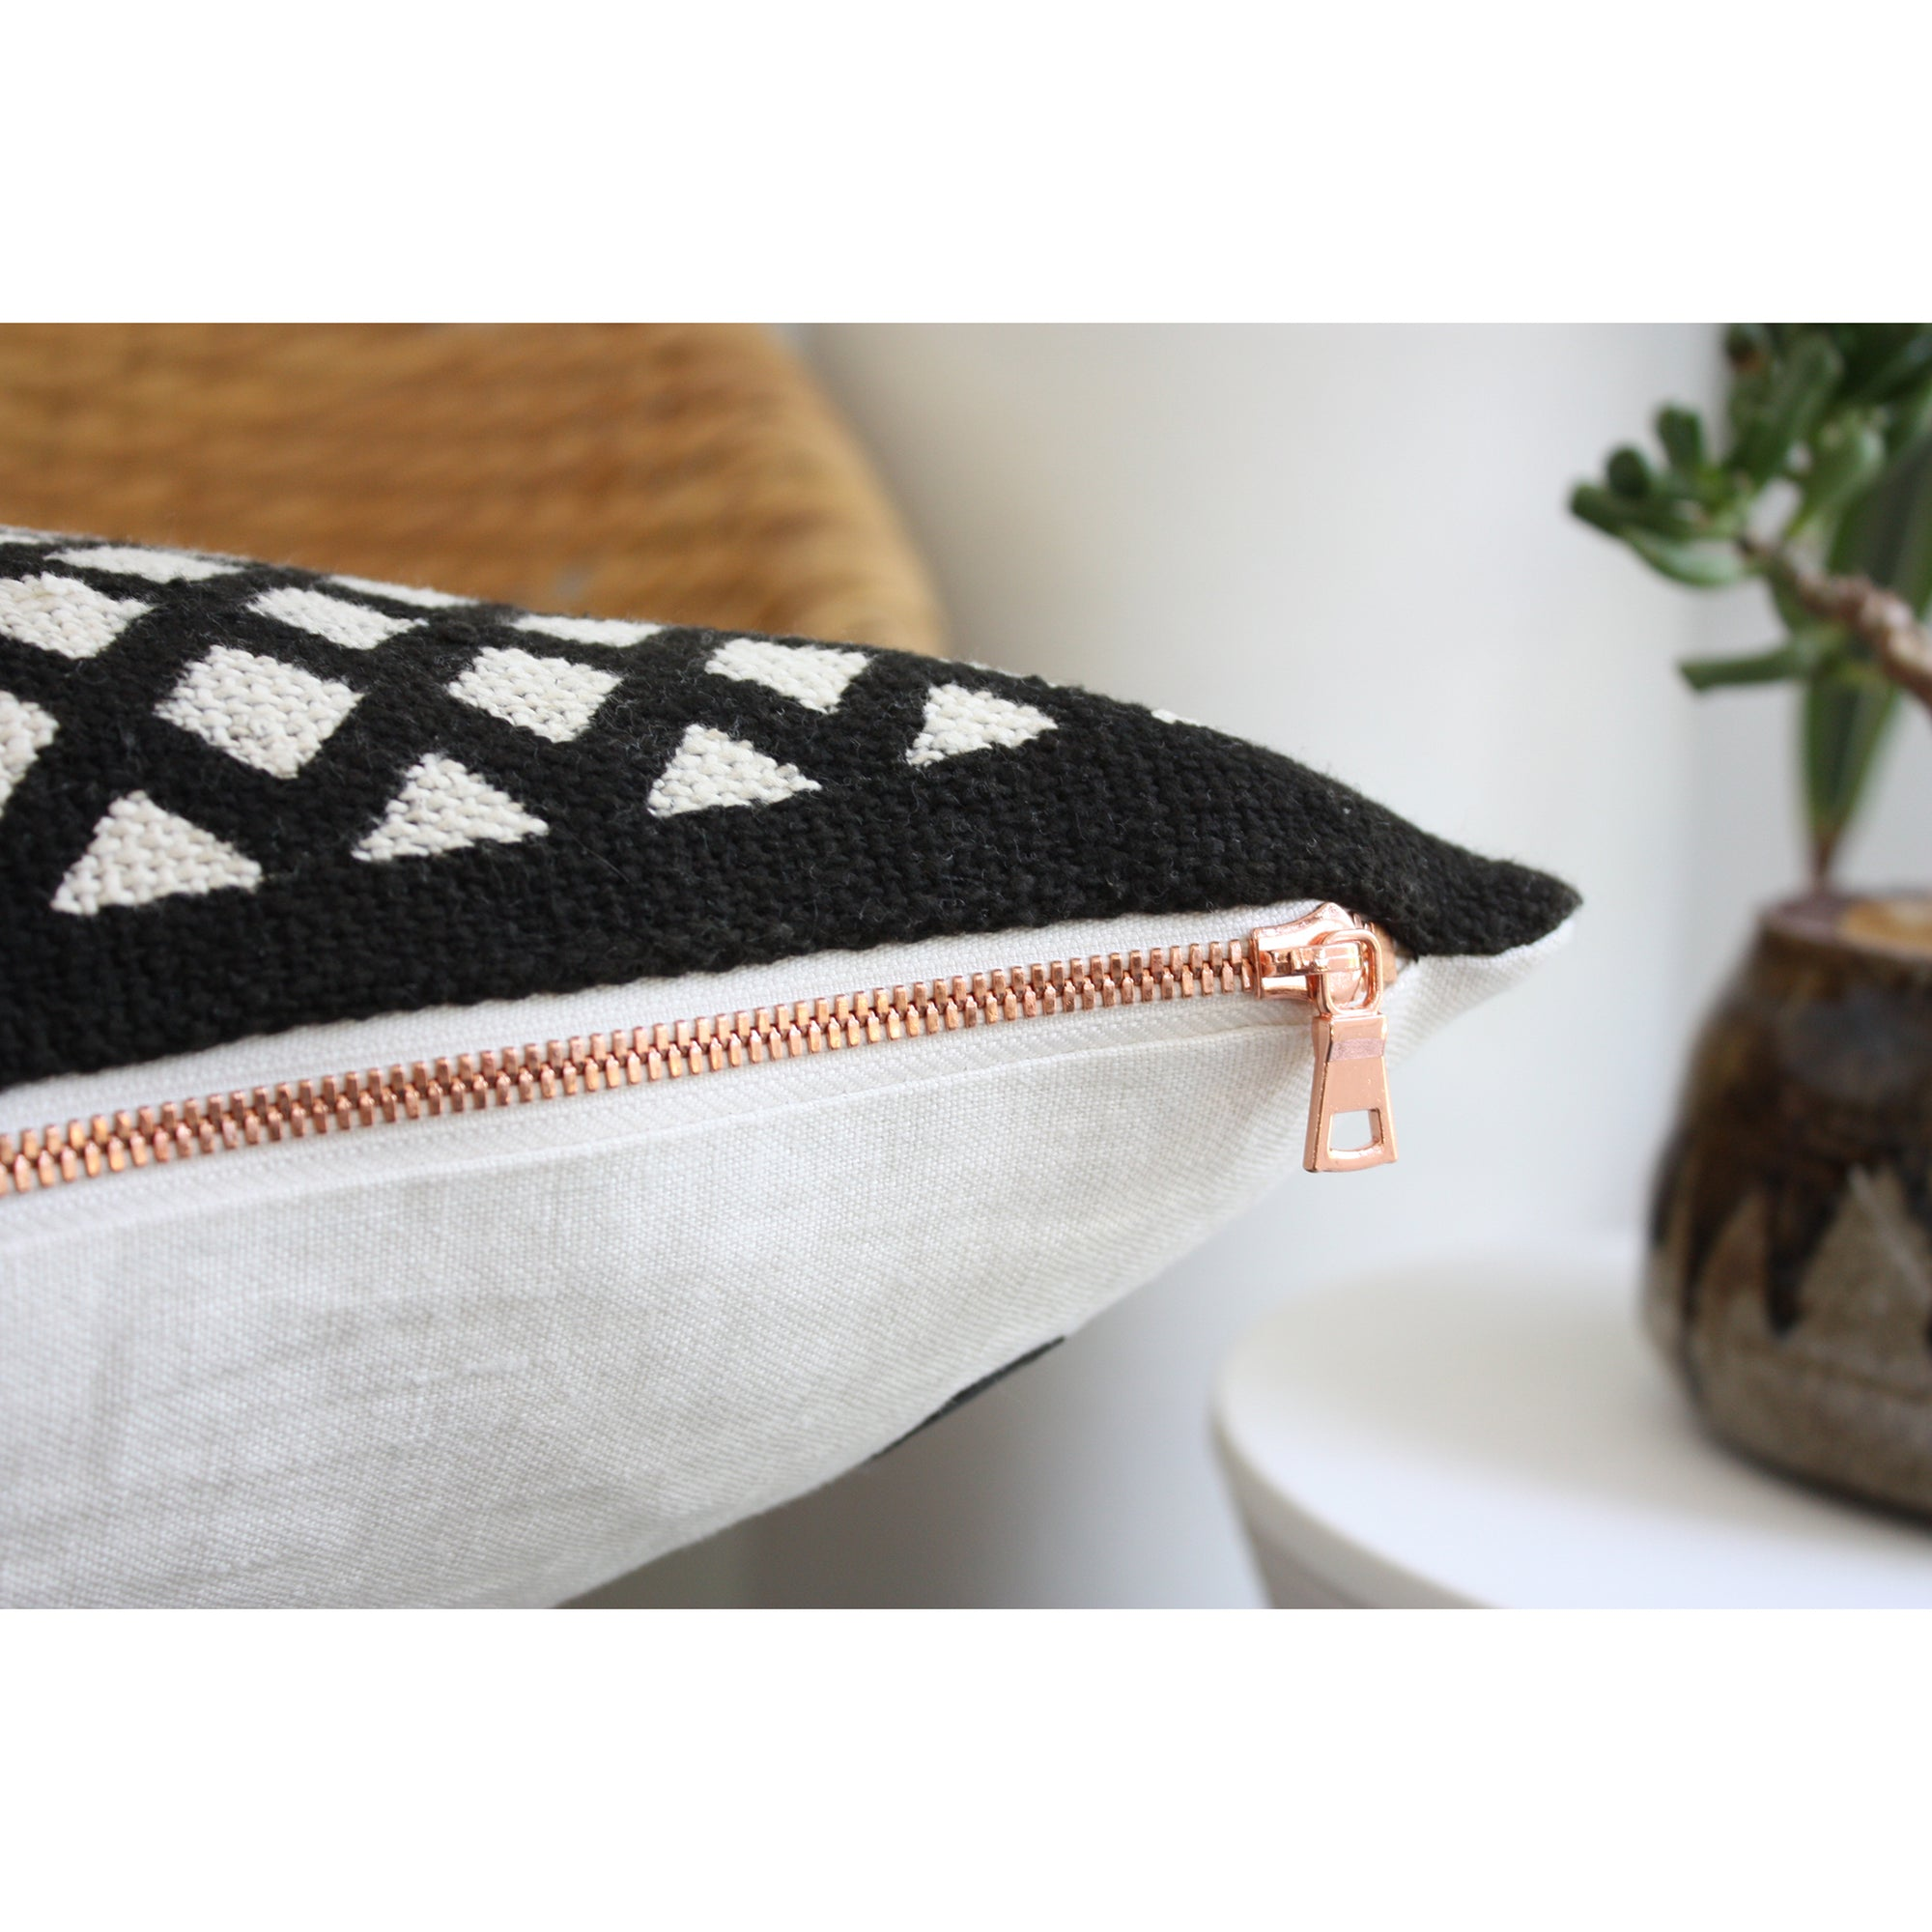 15x25 Lumbar - Black Trellis African Mudcloth Pillow Cover - Copper Zipper